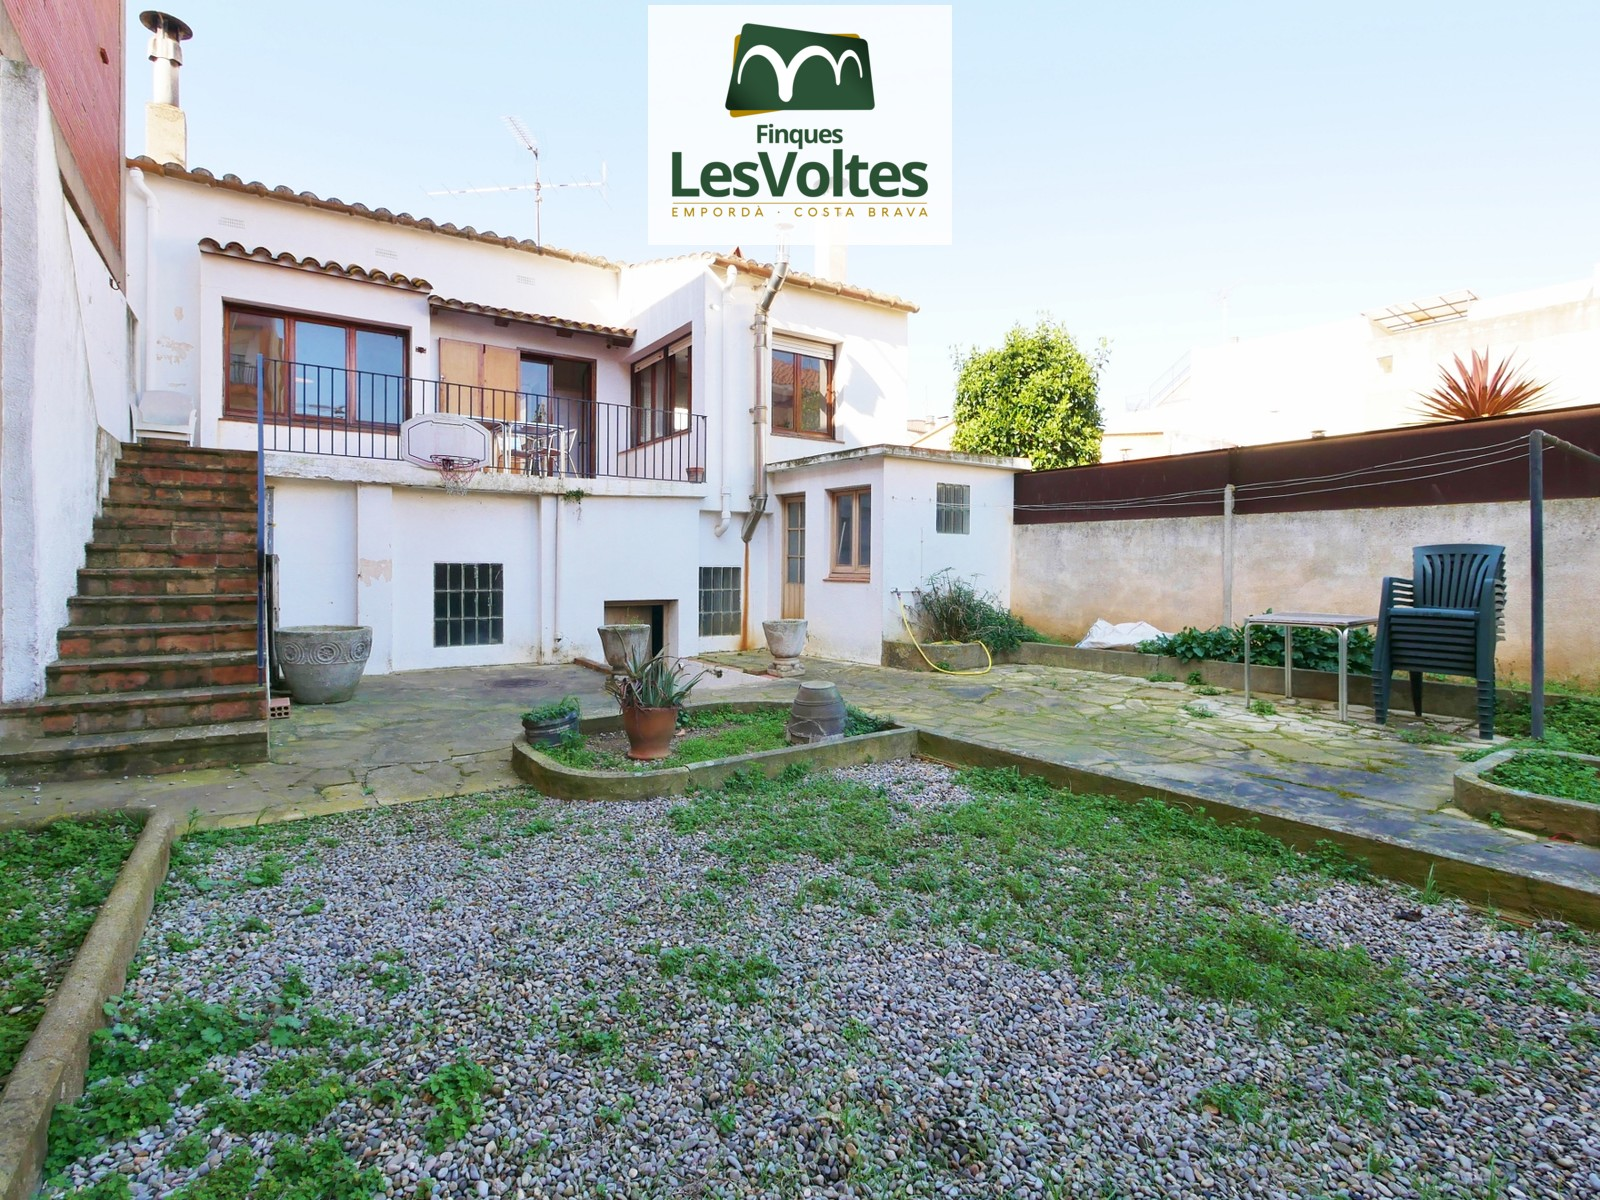 GREAT HOUSE WITH GARDEN AND GARAGE OF 140M2 FOR SALE IN THE CENTER OF PALAFRUGELL. ACCESS THROUGH TWO STREETS AND BUILDING PL